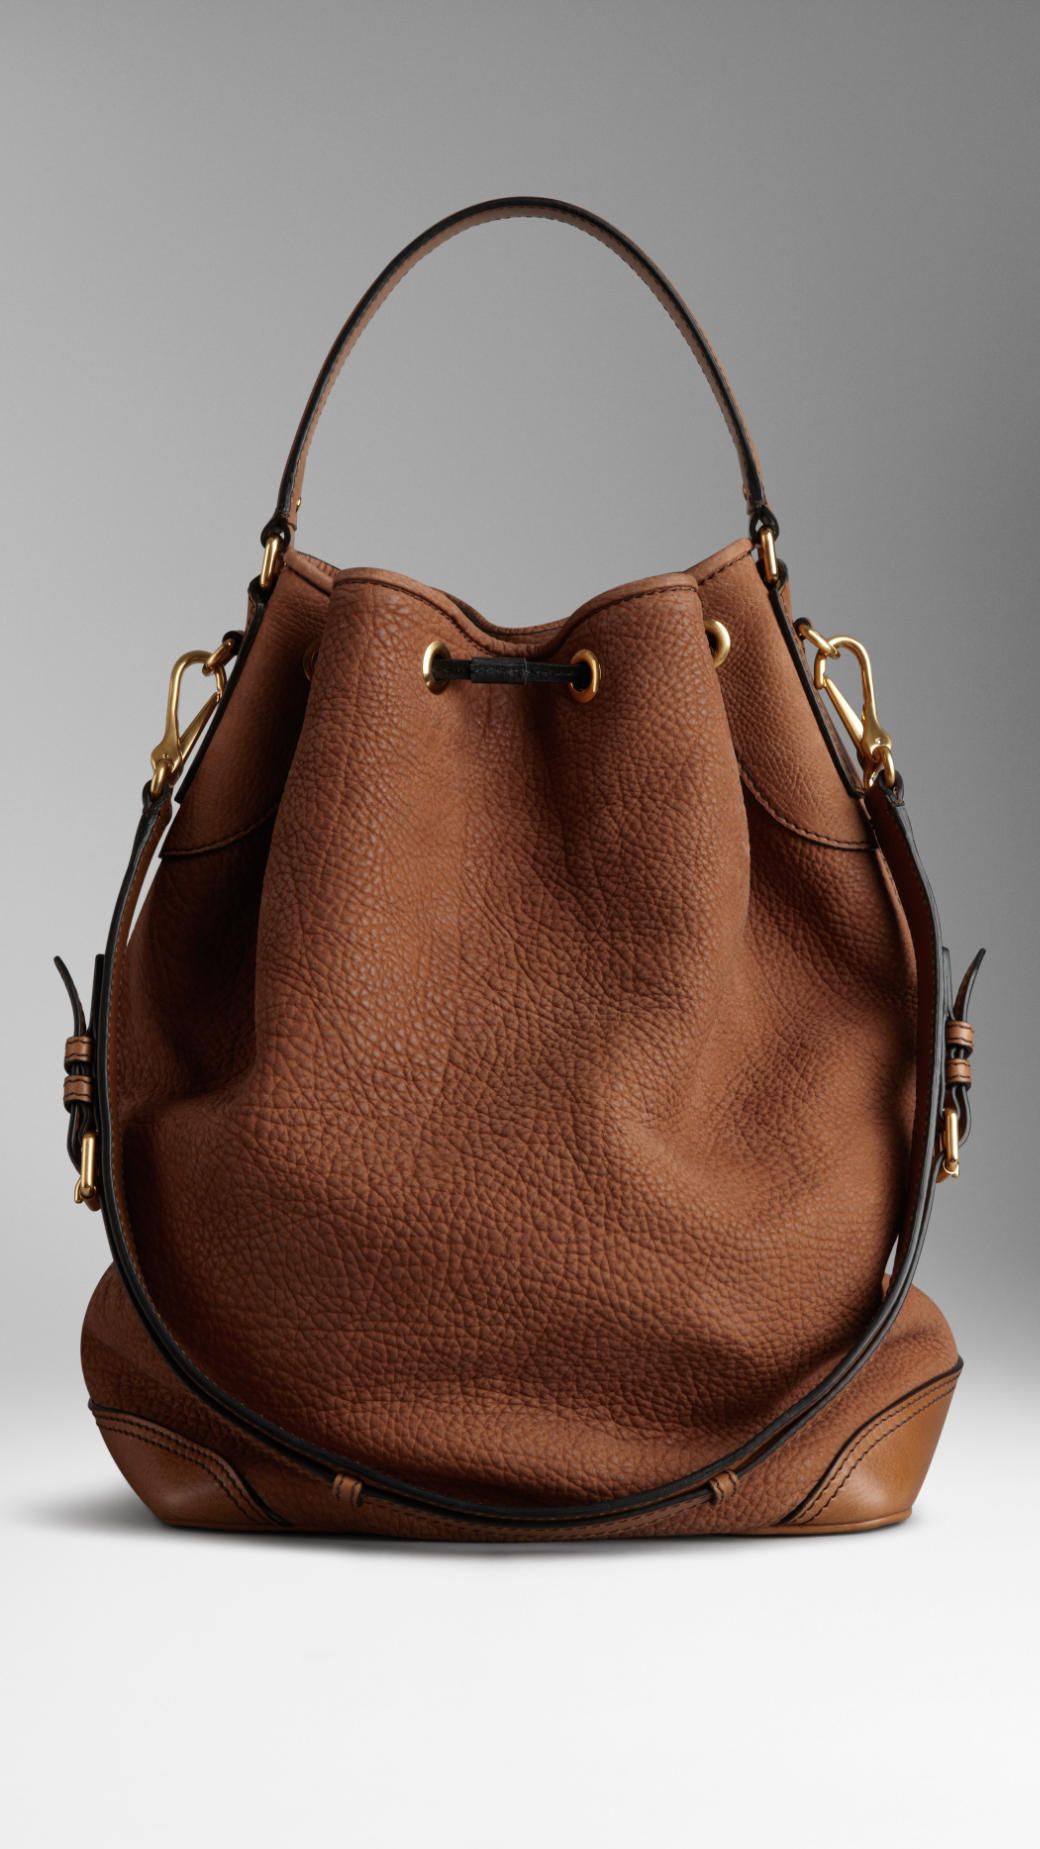 Lyst Burberry Large Nubuck Leather Hobo Bag In Brown